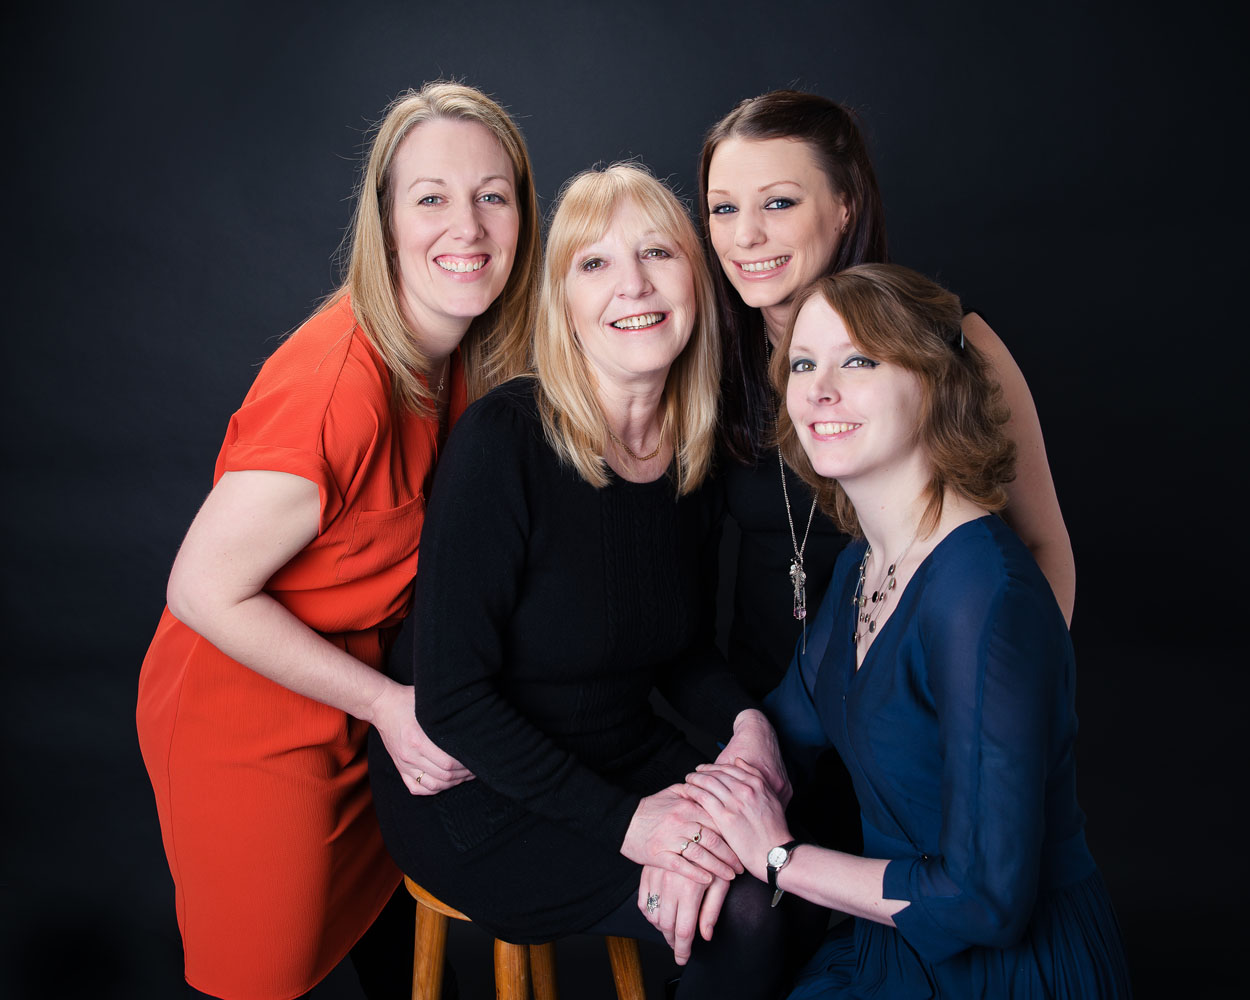 Family photoshoot Nottingham photographer photo studio photography Beeston Nottinghamshire Derby